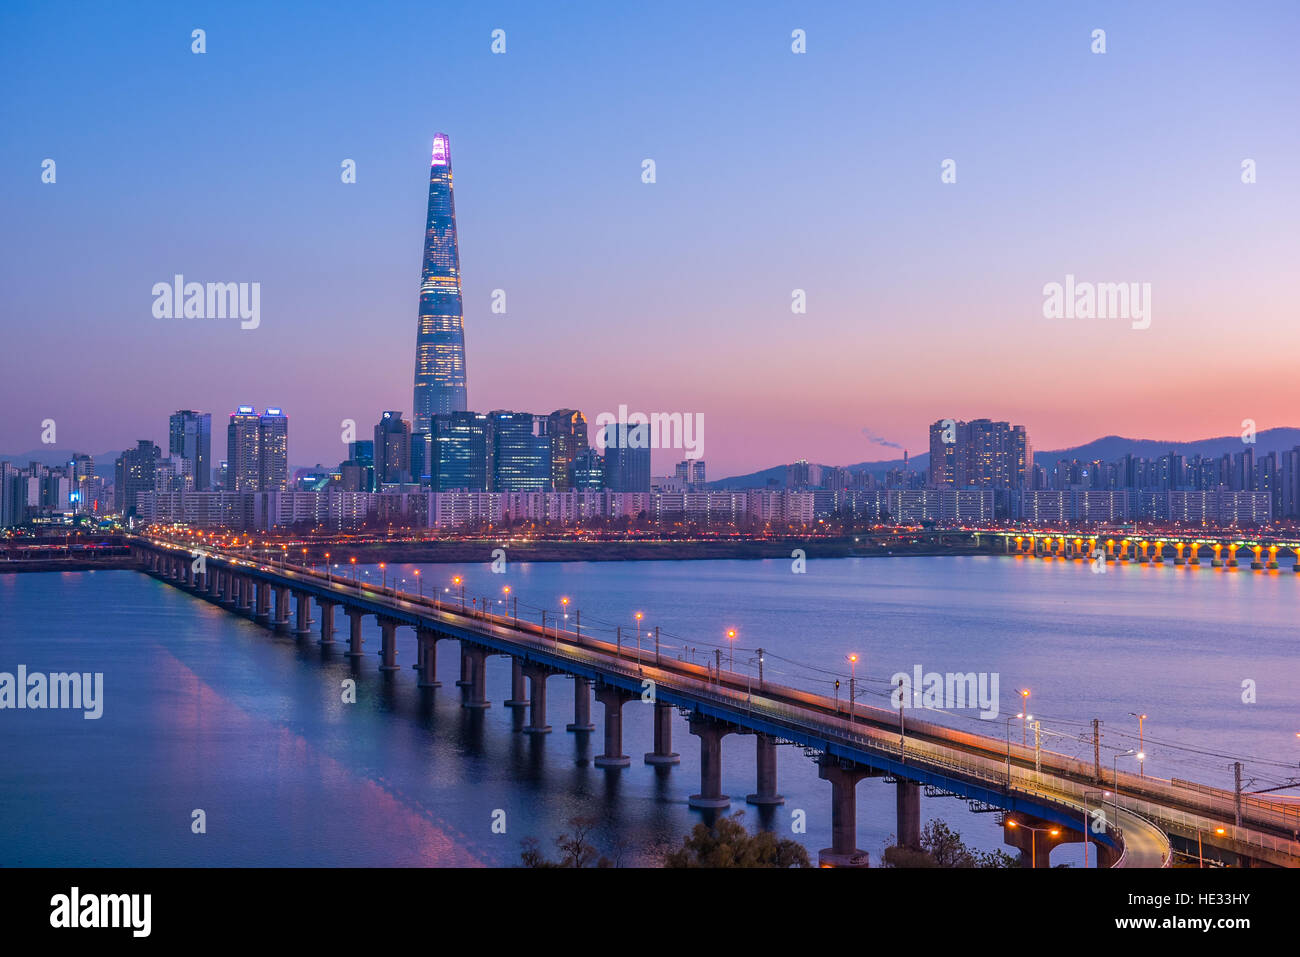 Seoul Subway and Lotte Tower at Night, South korea - Stock Image